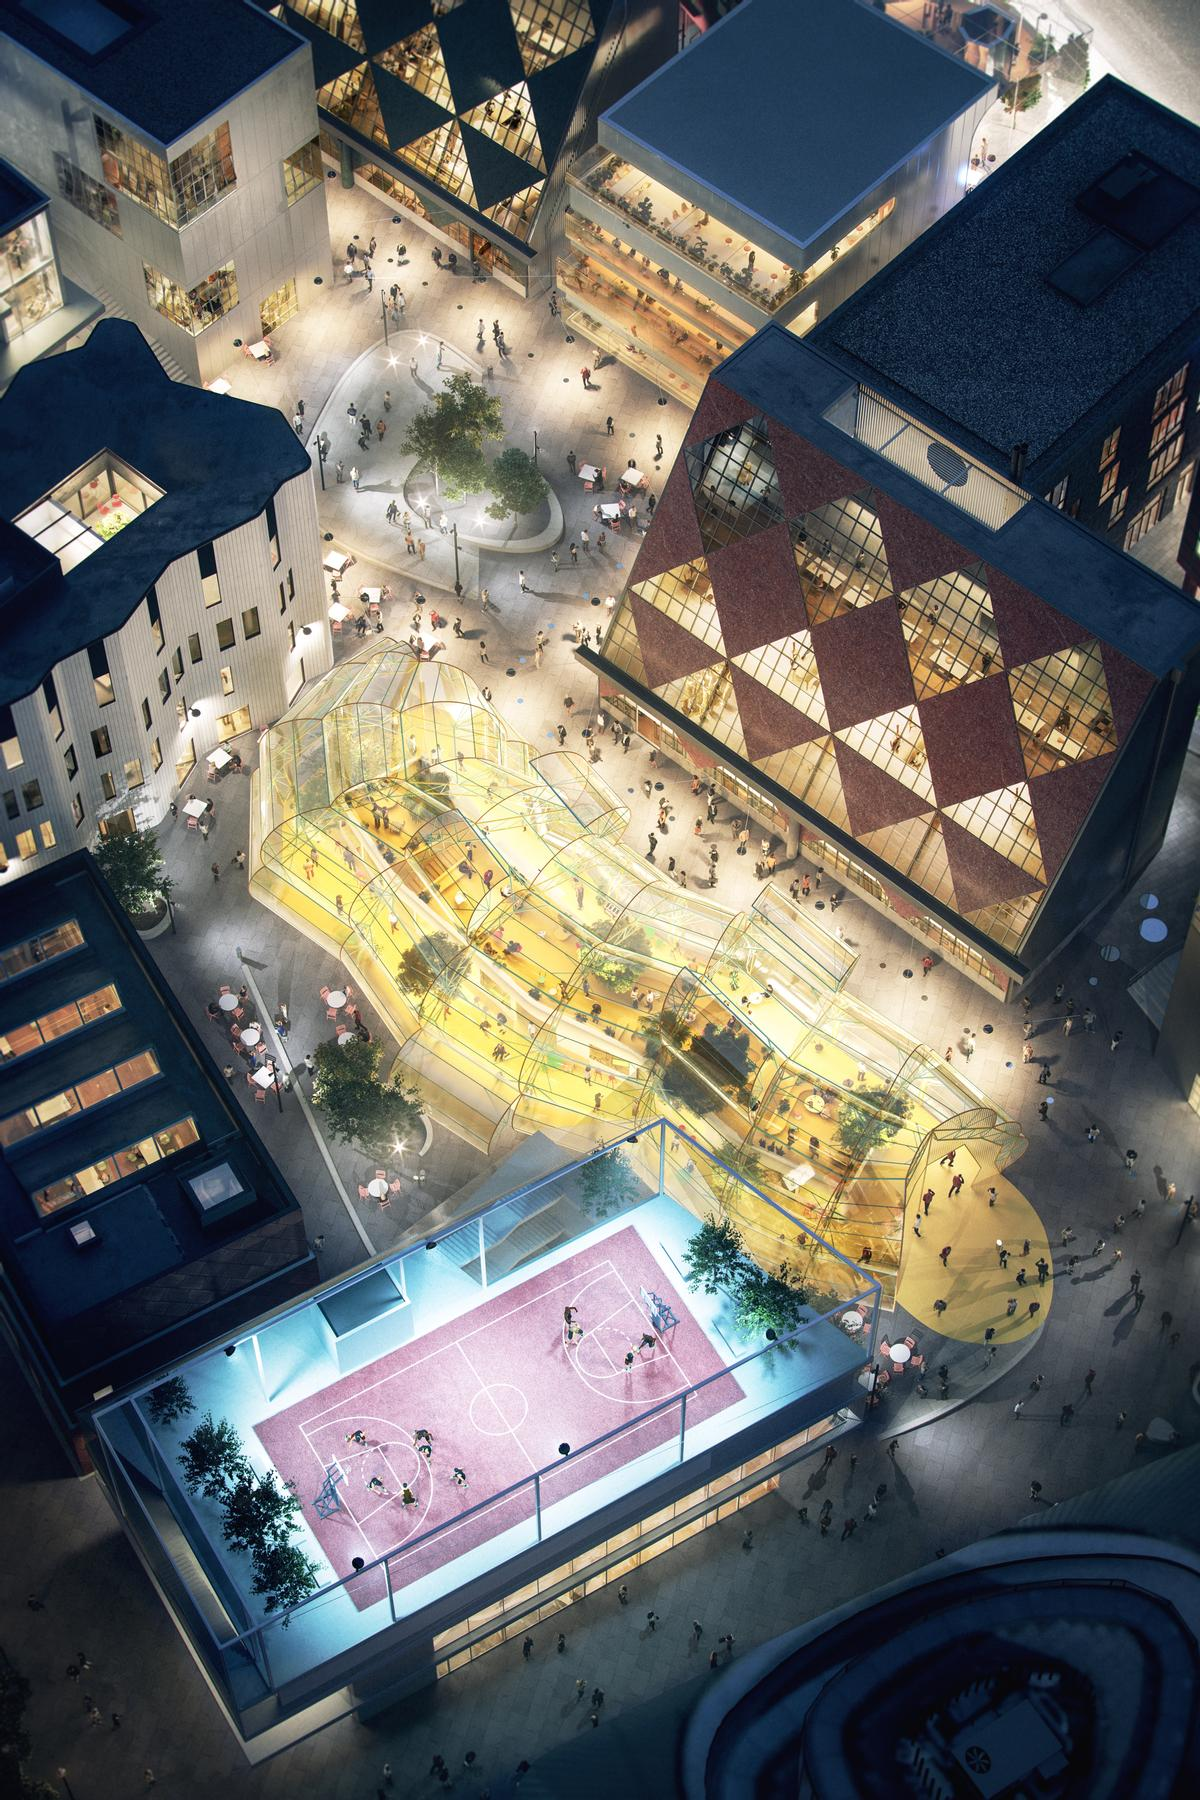 To mix and juxtapose architectural voices, eight emerging architectural practices have been selected from across Europe to create the district's 16 low-cost, human-scaled buildings / Knight Dragon and Uniform